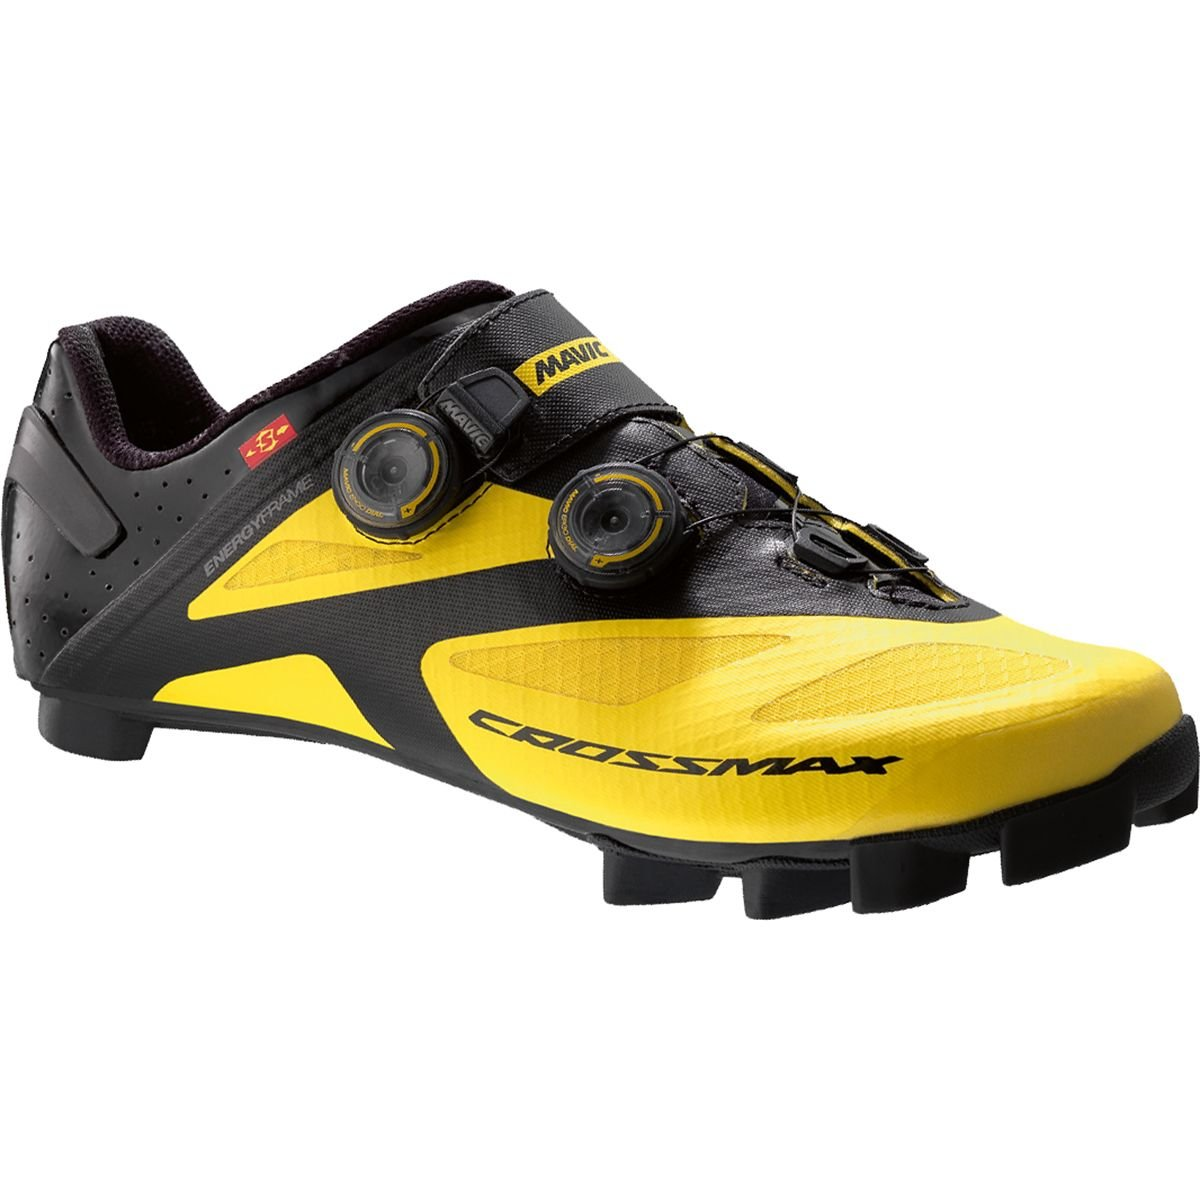 Mavic Crossmax SL Ultimate Shoe – Men 's B0153RLIKU 7.5 D(M) US|Yellow Mavic/Black Yellow Mavic/Black 7.5 D(M) US